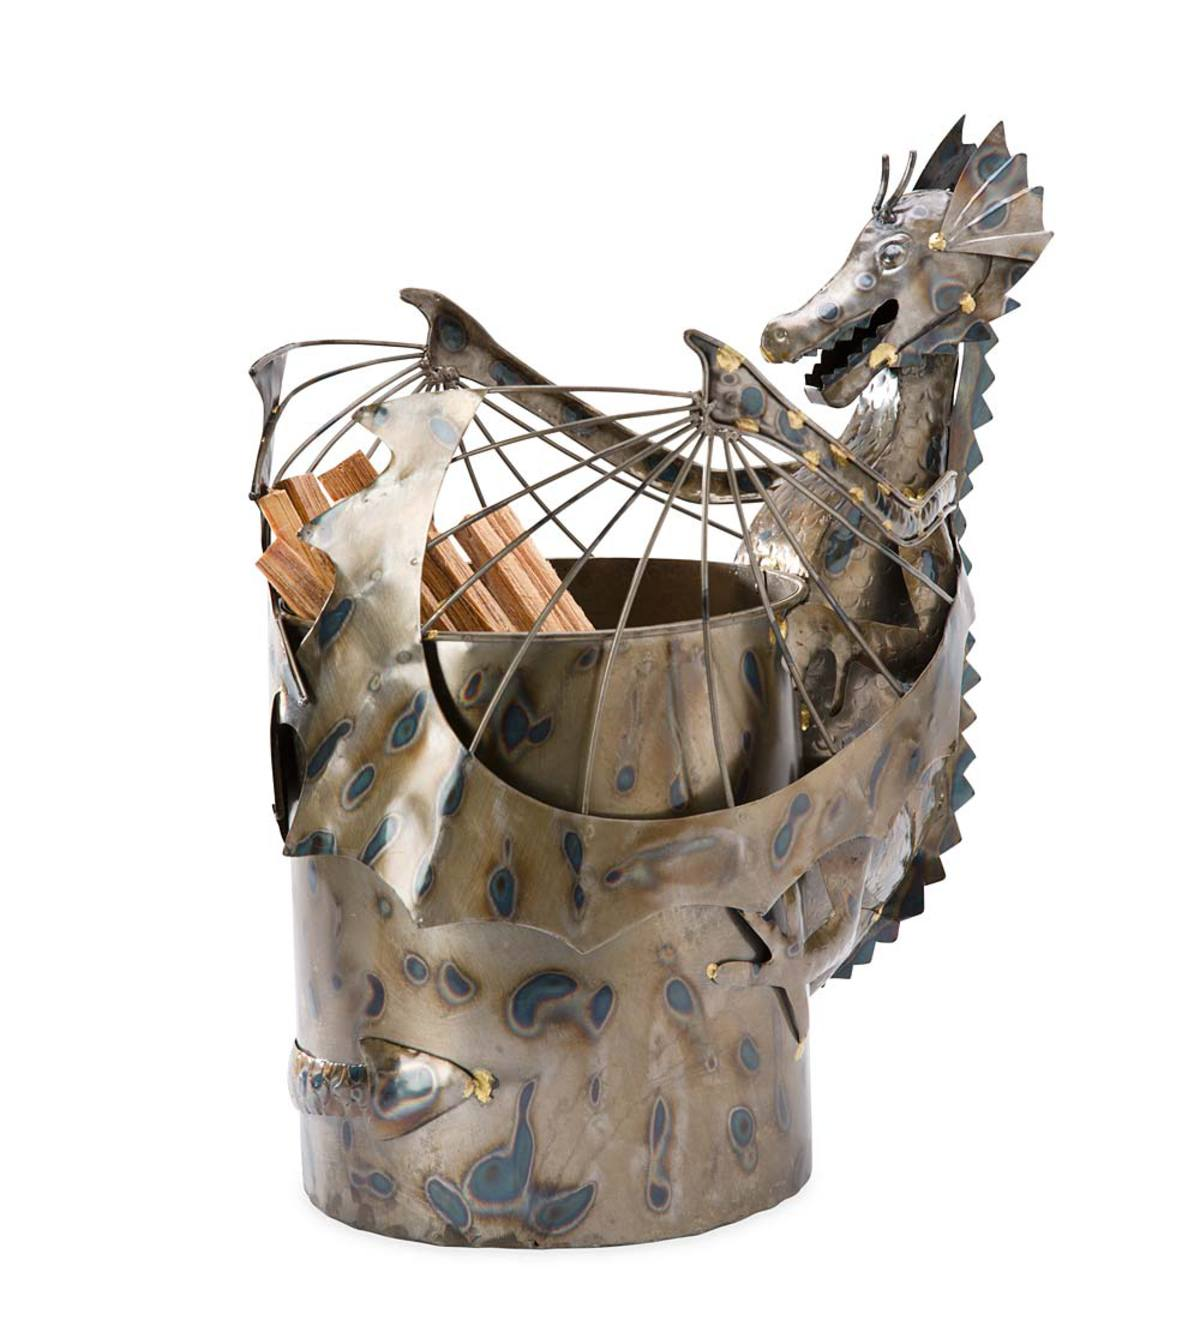 Metal Dragon Fatwood Holder with 5 lbs. of Fatwood - Silver